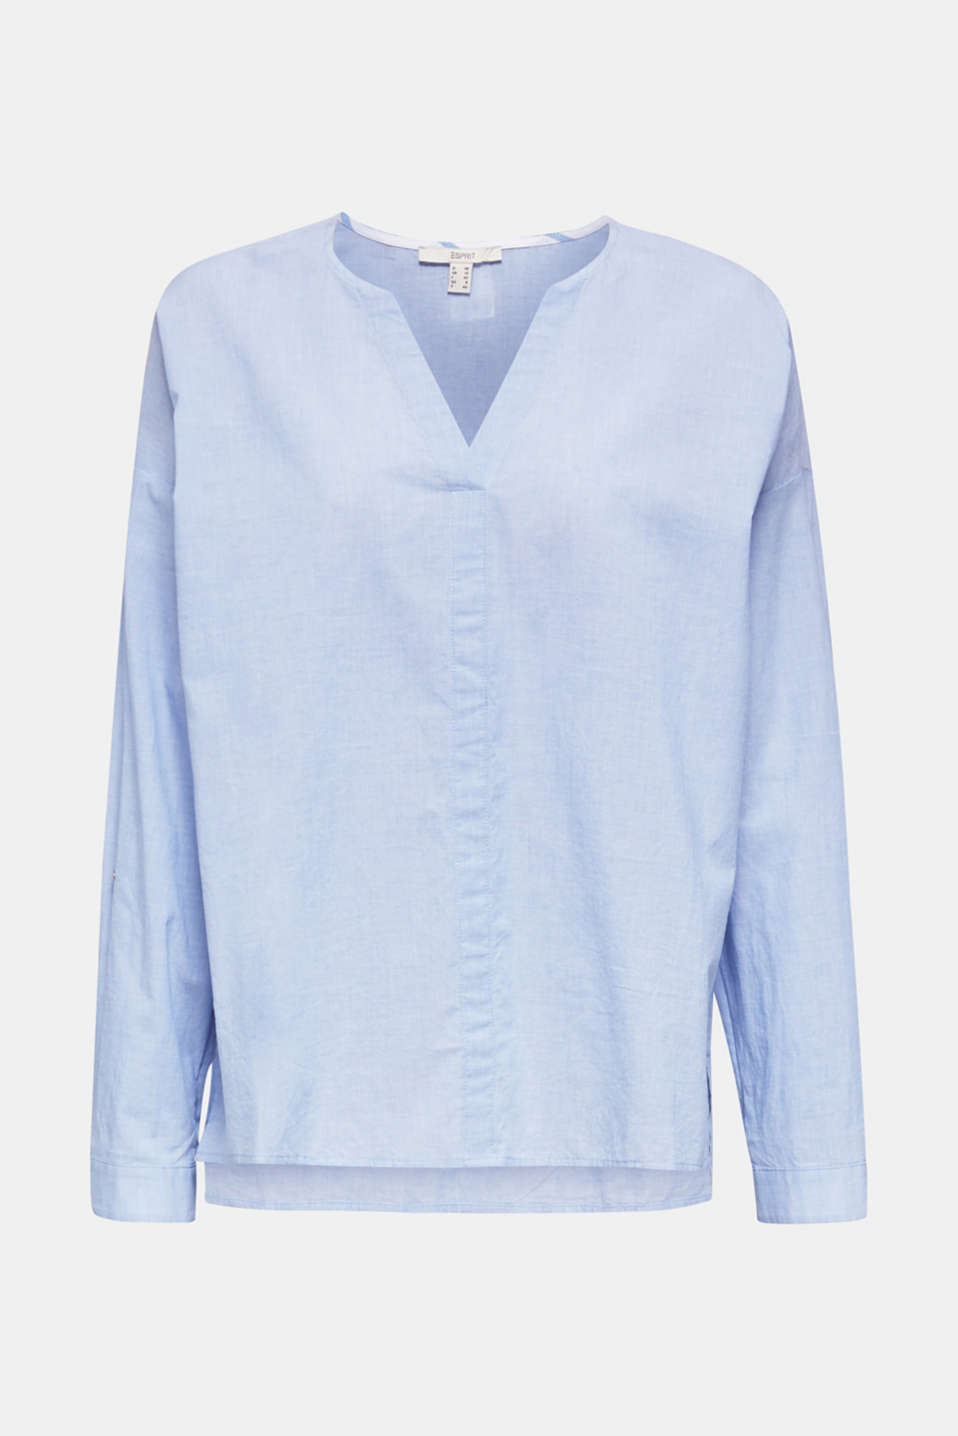 Blouse with turn-up sleeves, 100% cotton, LIGHT BLUE, detail image number 8